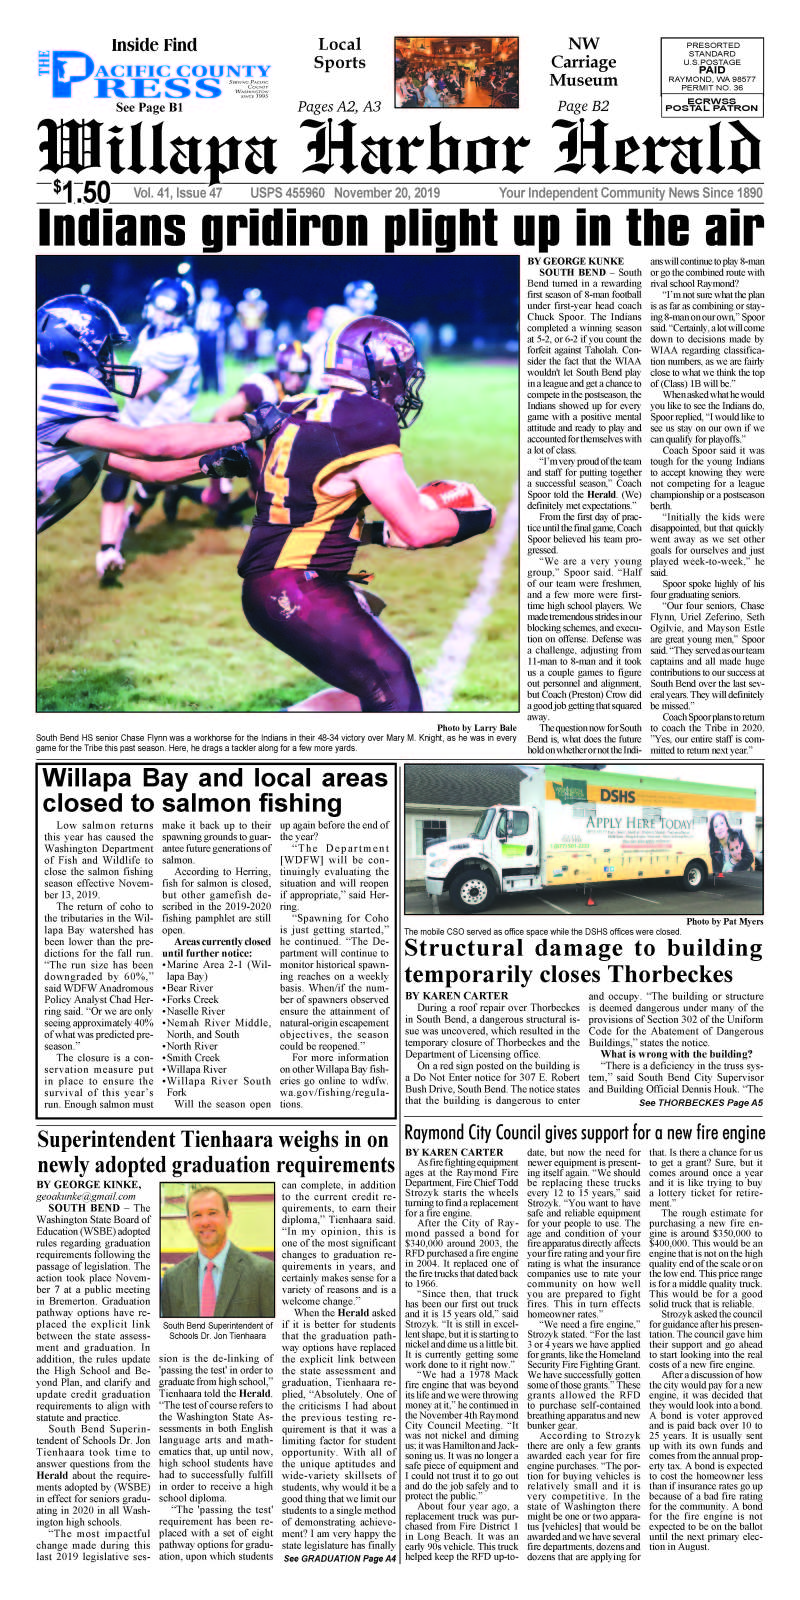 November 20, 2019 Willapa Harbor Herald and Pacific County Press